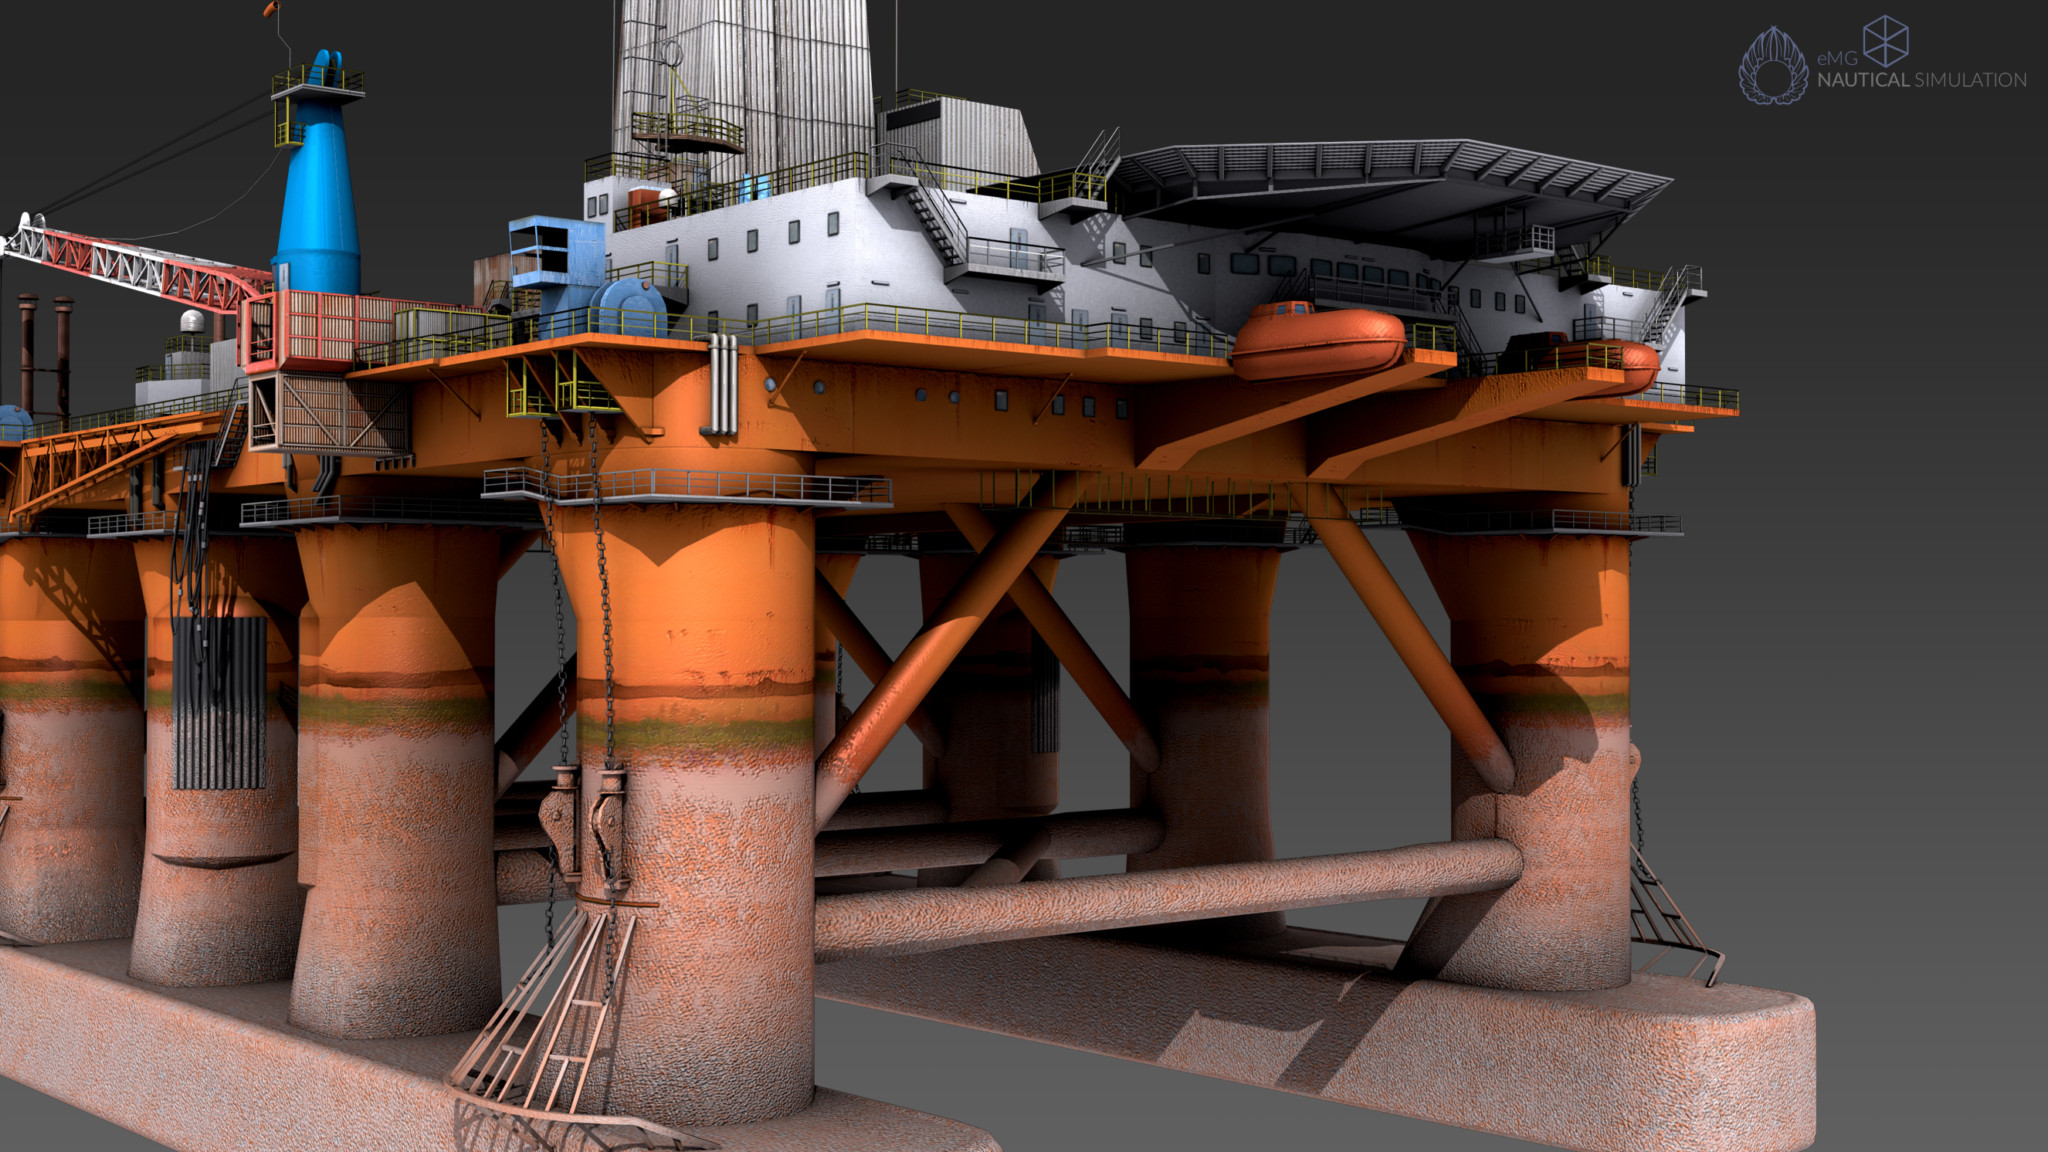 Oil_Drilling_Rig_Render_03